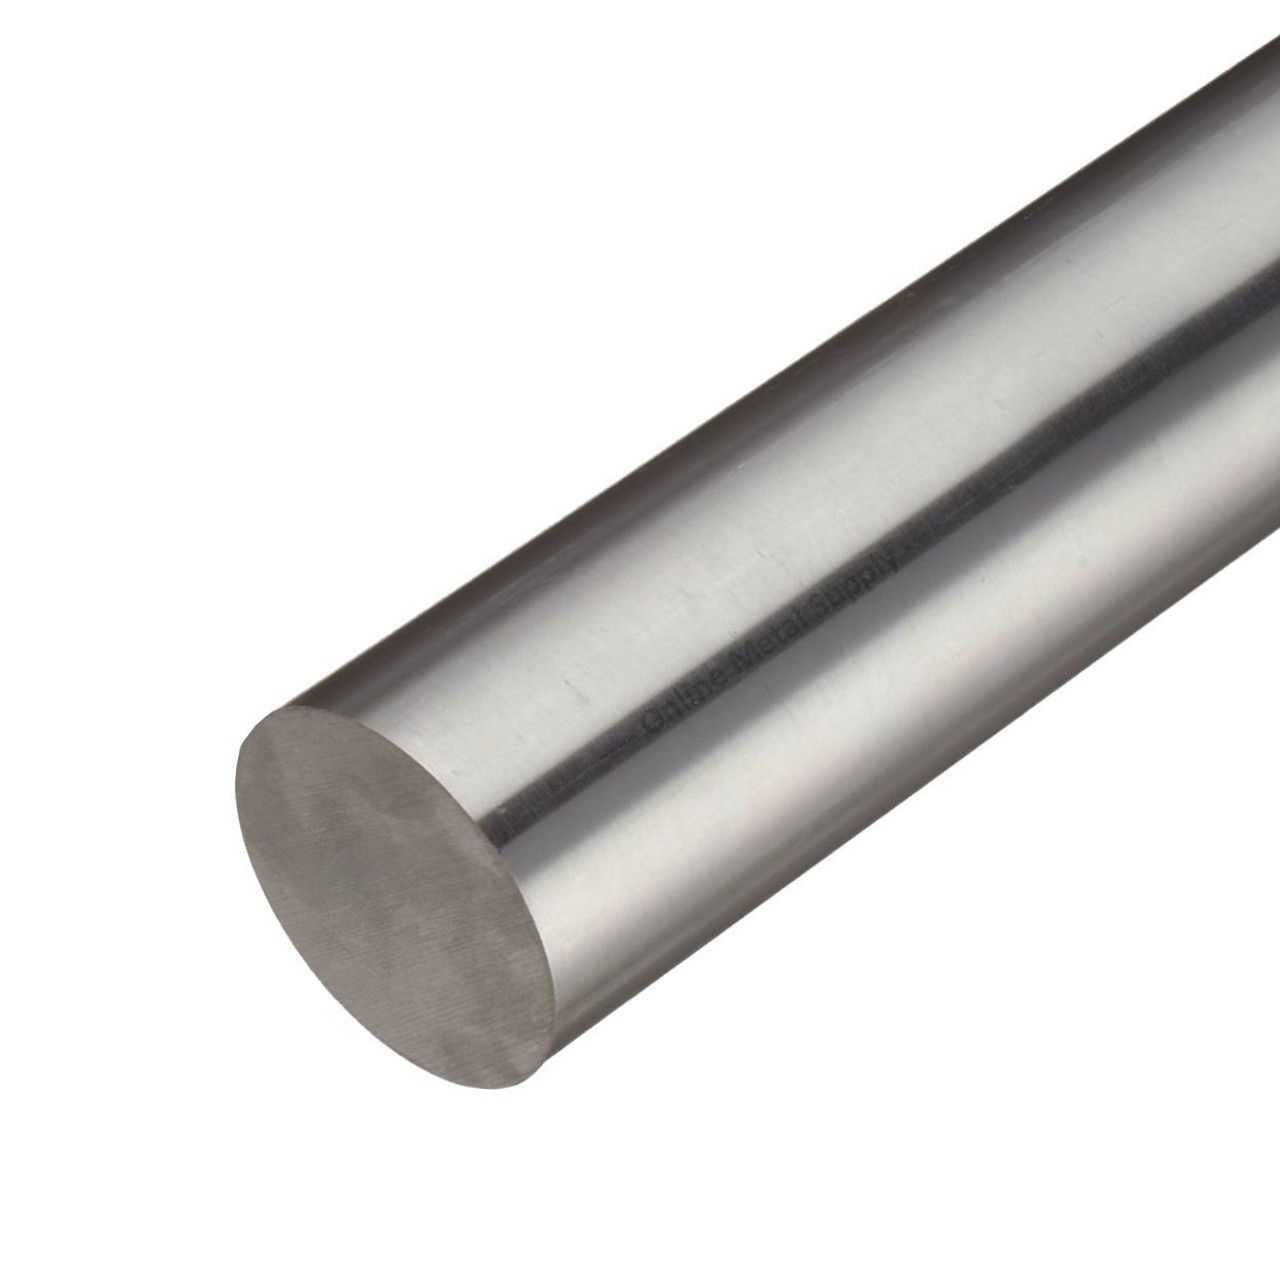 3.750 (3-3/4 inch) x 7 inches, 17-4 H1150 CF Stainless Steel Round Rod